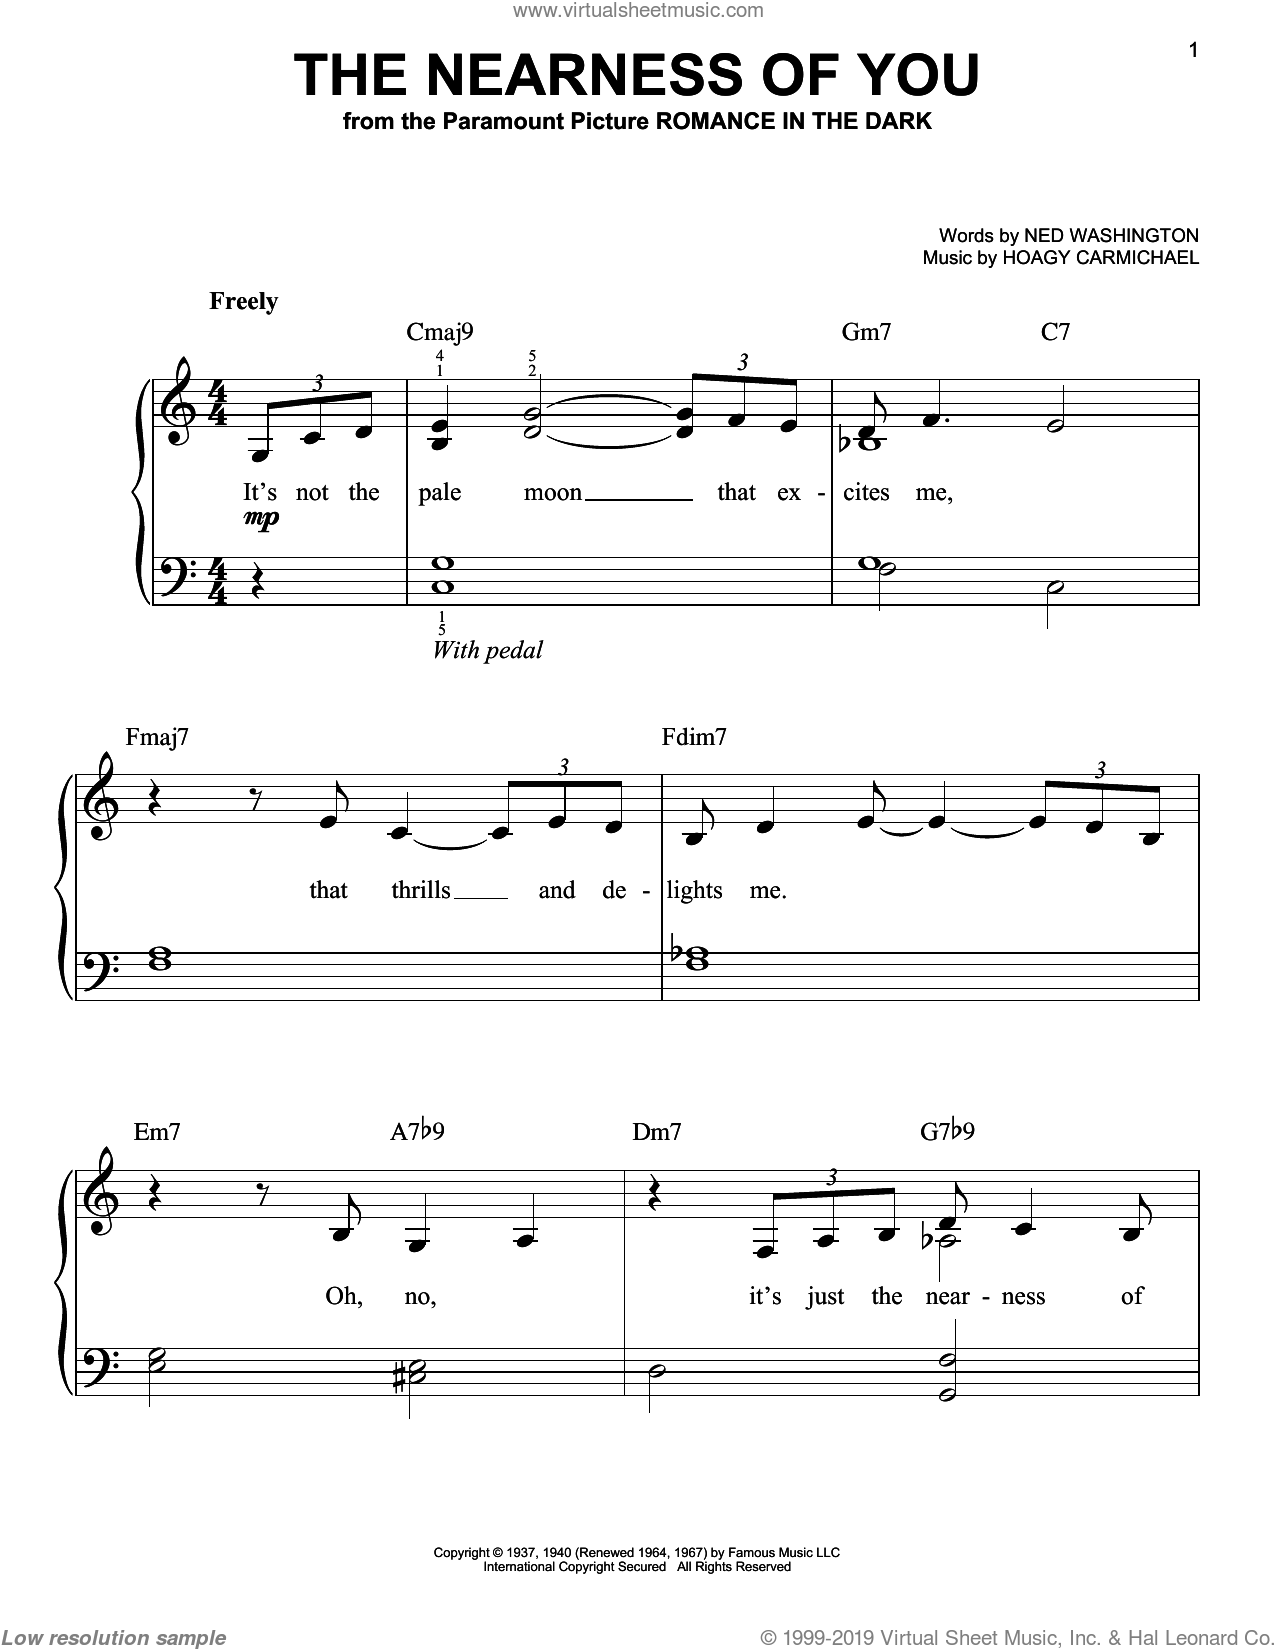 The Nearness Of You sheet music for piano solo by Norah Jones, Hoagy Carmichael and Ned Washington, easy skill level